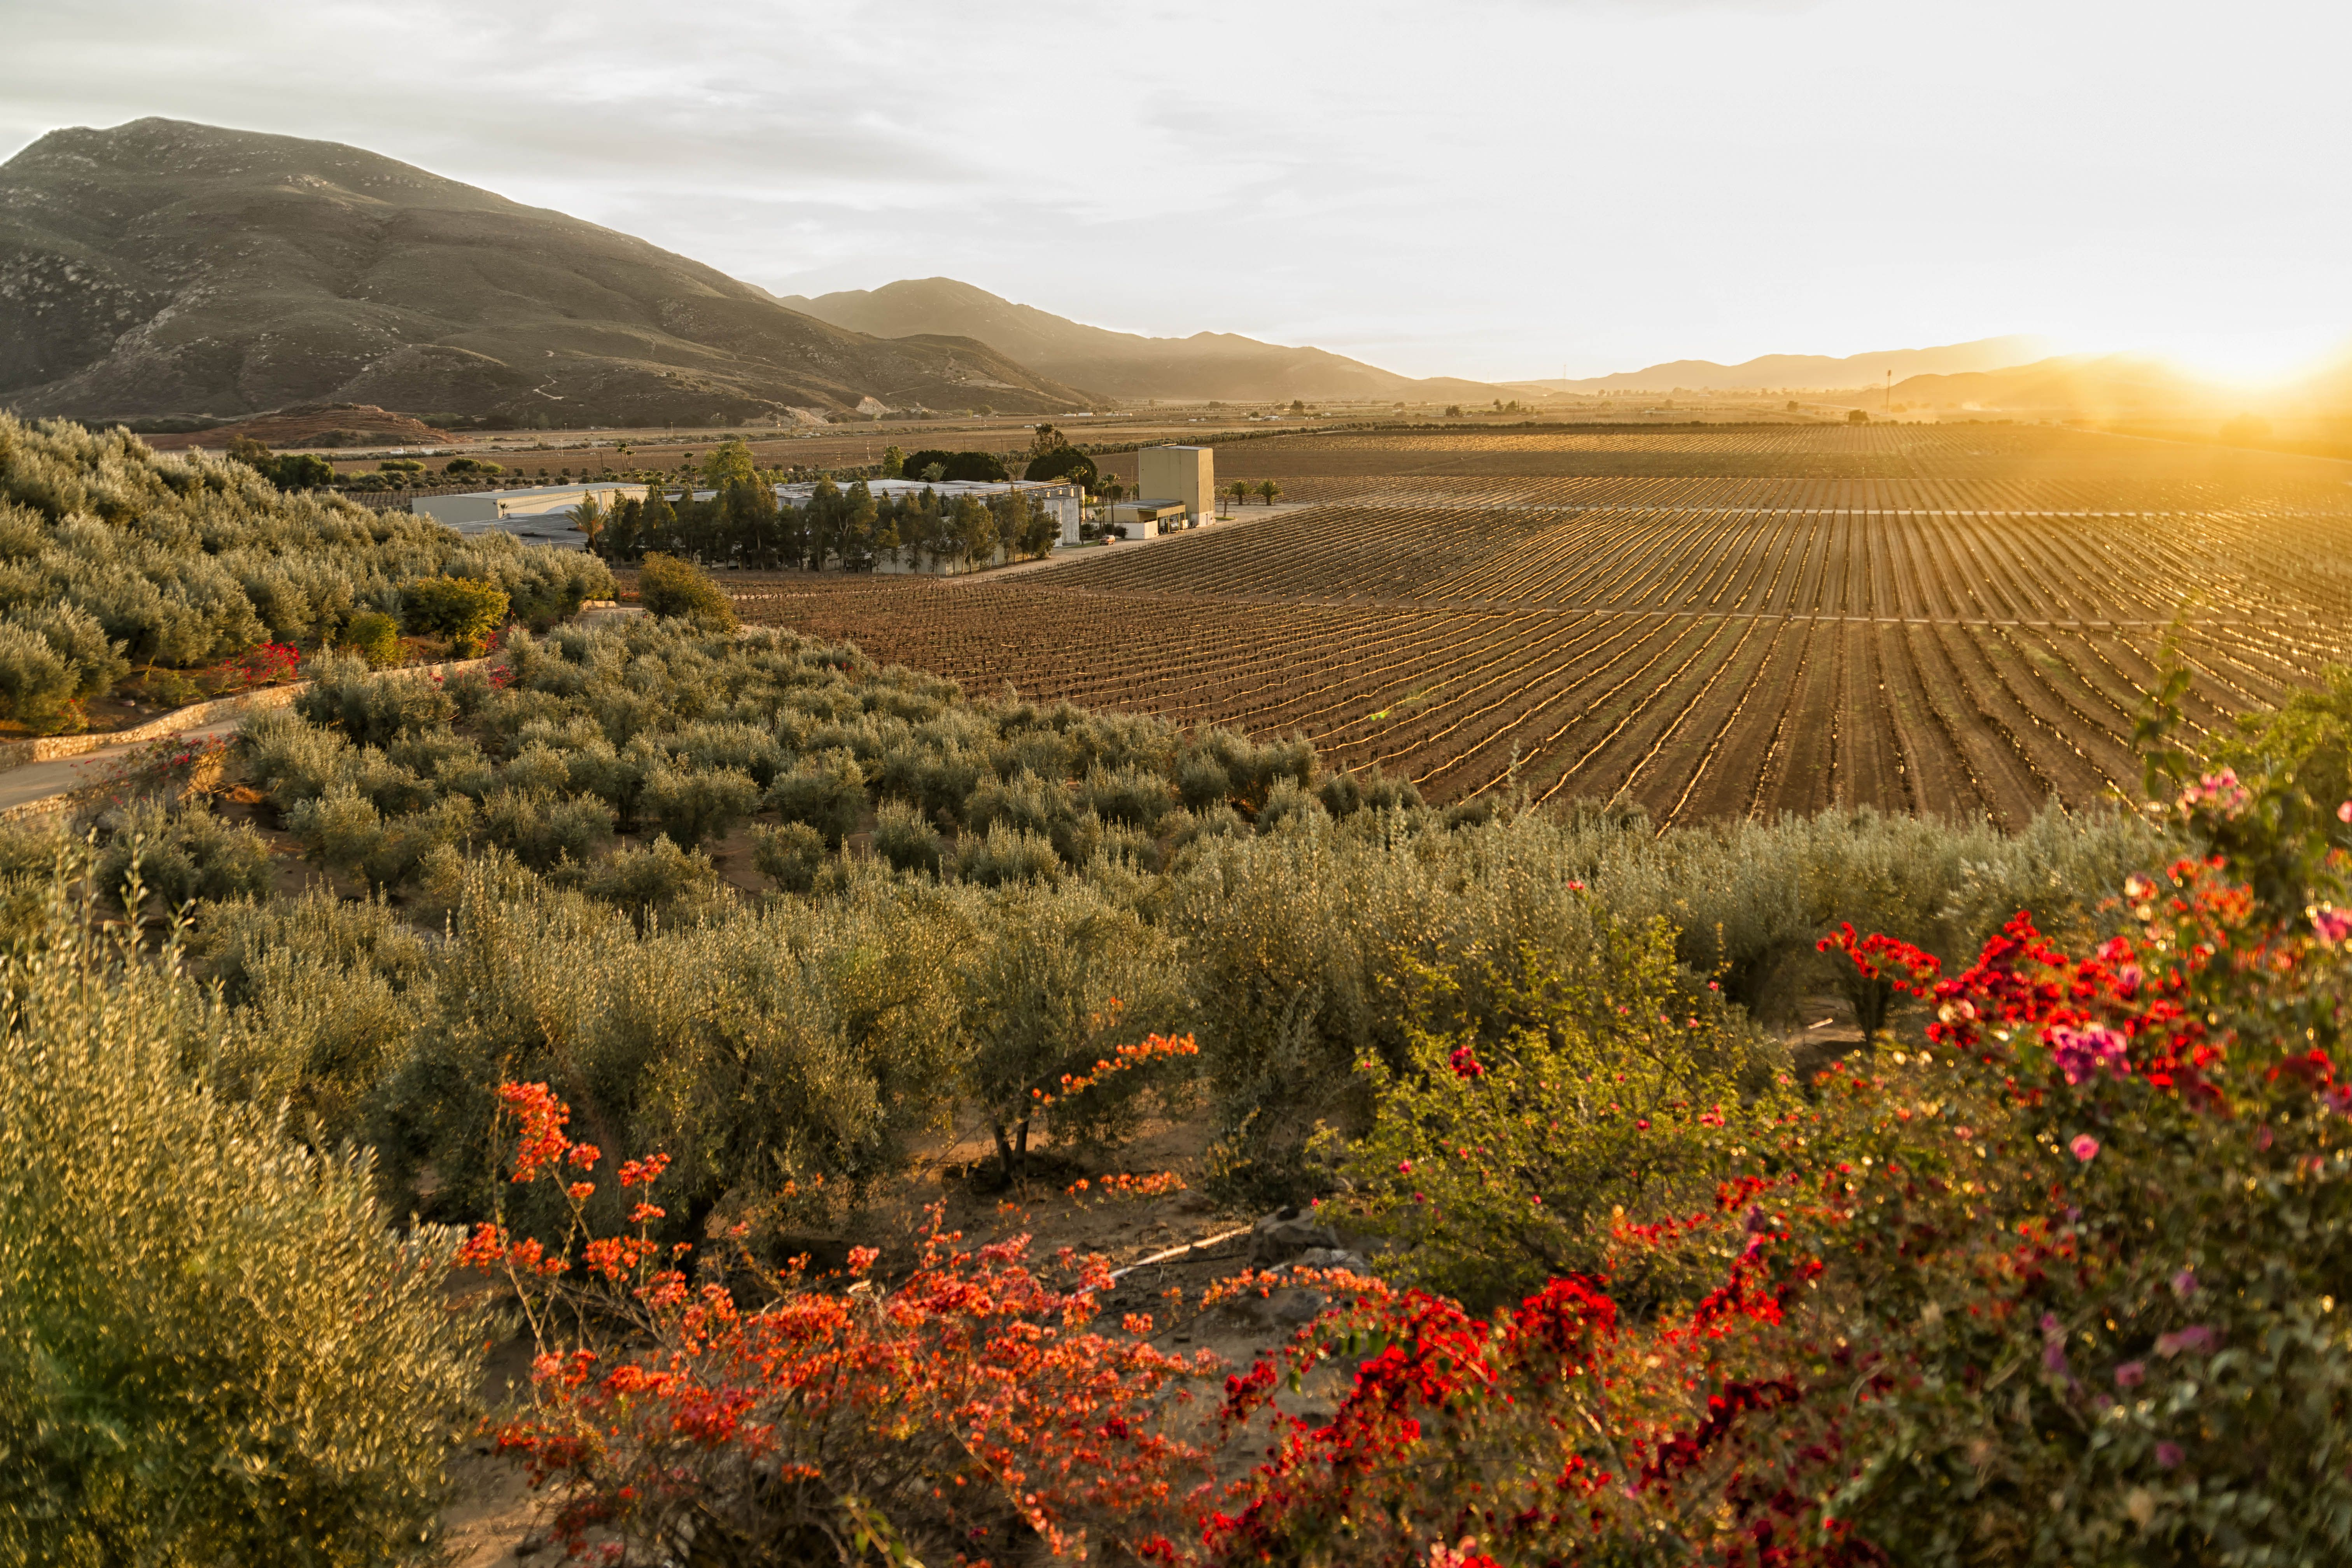 Vineyard and winery at sundown in the Valle de Guadalupe